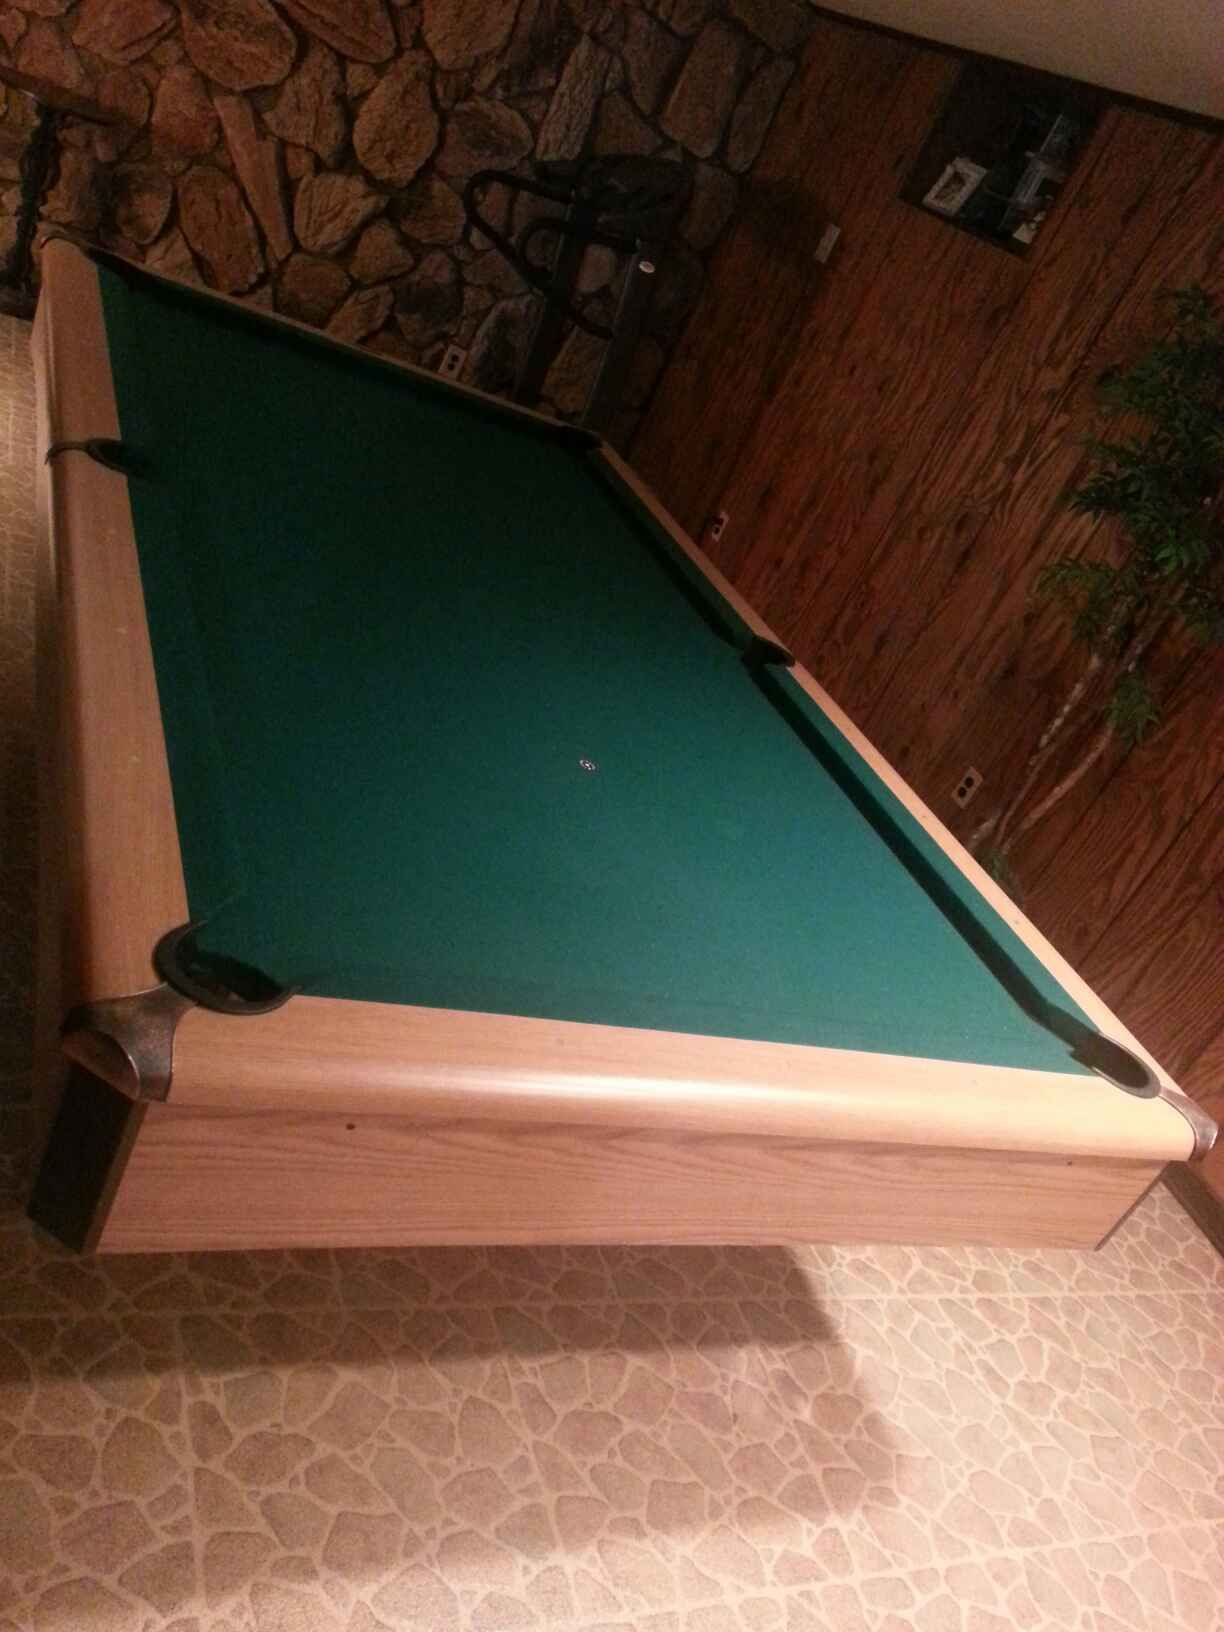 AMF PLaymaster 8' Pool tables for sale, Pool table